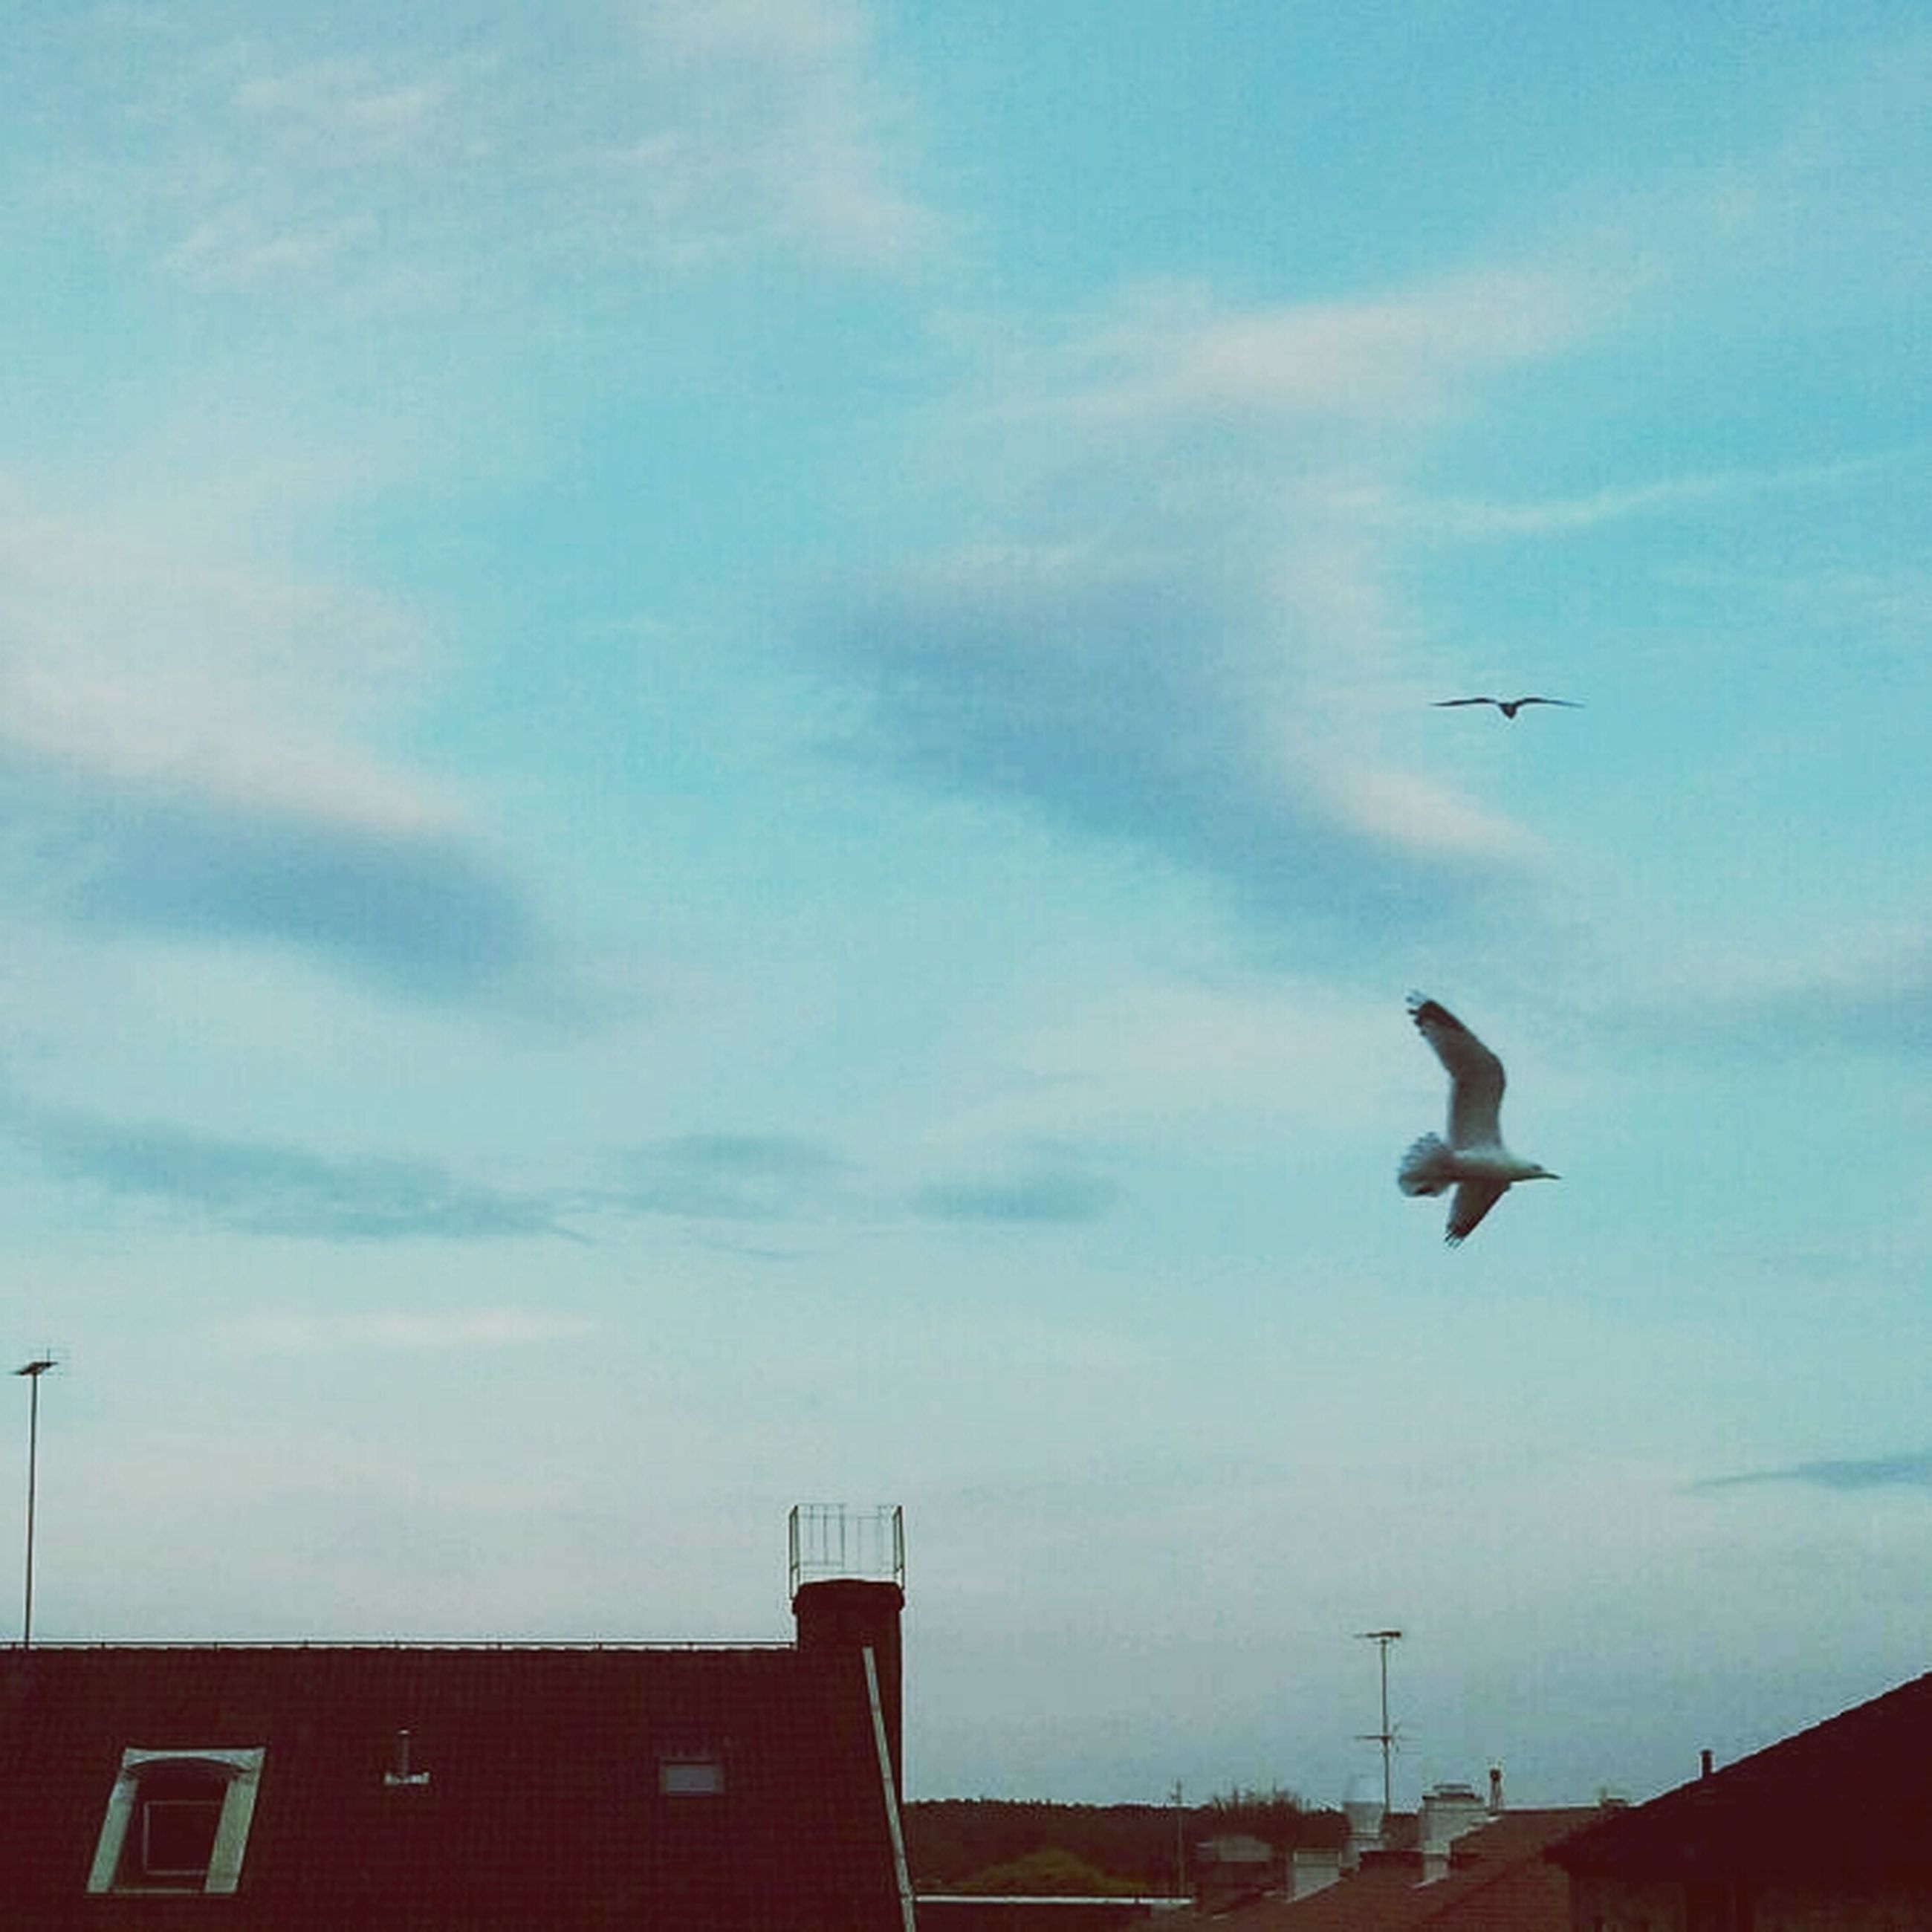 bird, building exterior, flying, low angle view, sky, animal themes, built structure, architecture, animals in the wild, wildlife, cloud - sky, roof, cloud, outdoors, seagull, one animal, cloudy, mid-air, blue, no people